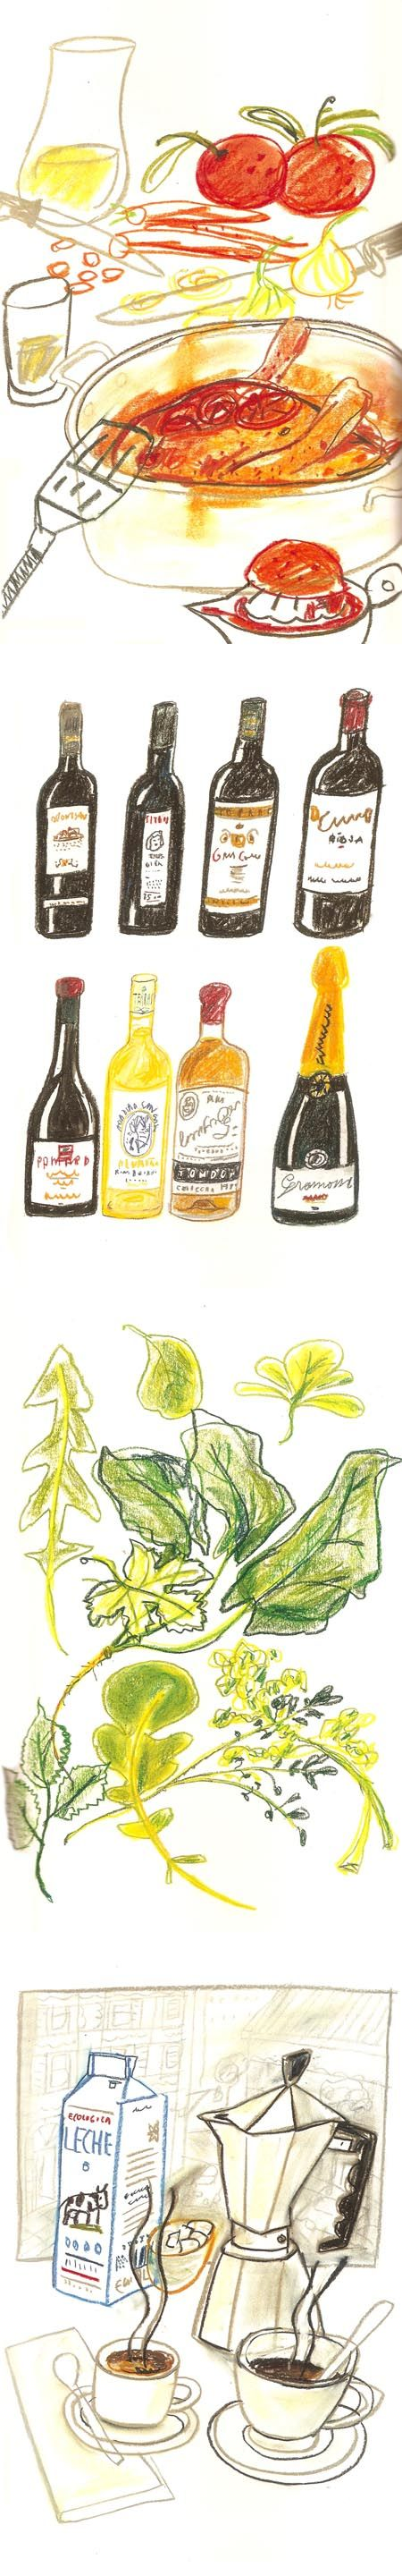 Illustrations for '1080 Recipes' by Javier Mariscal